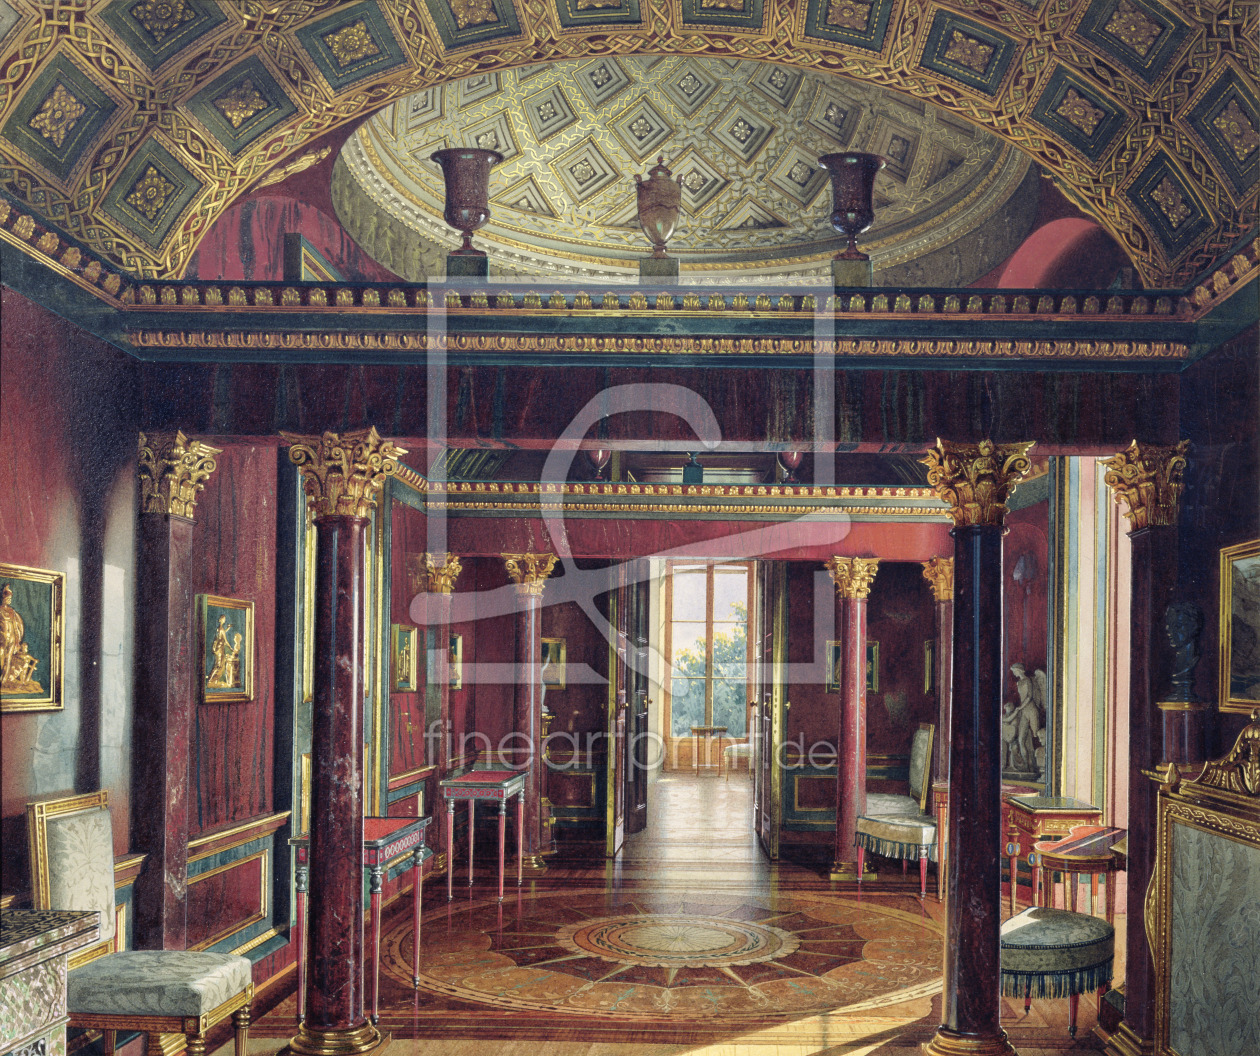 Bild-Nr.: 31002719 The Agate Room in the Catherine Palace at Tsarskoye Selo, 1859 erstellt von